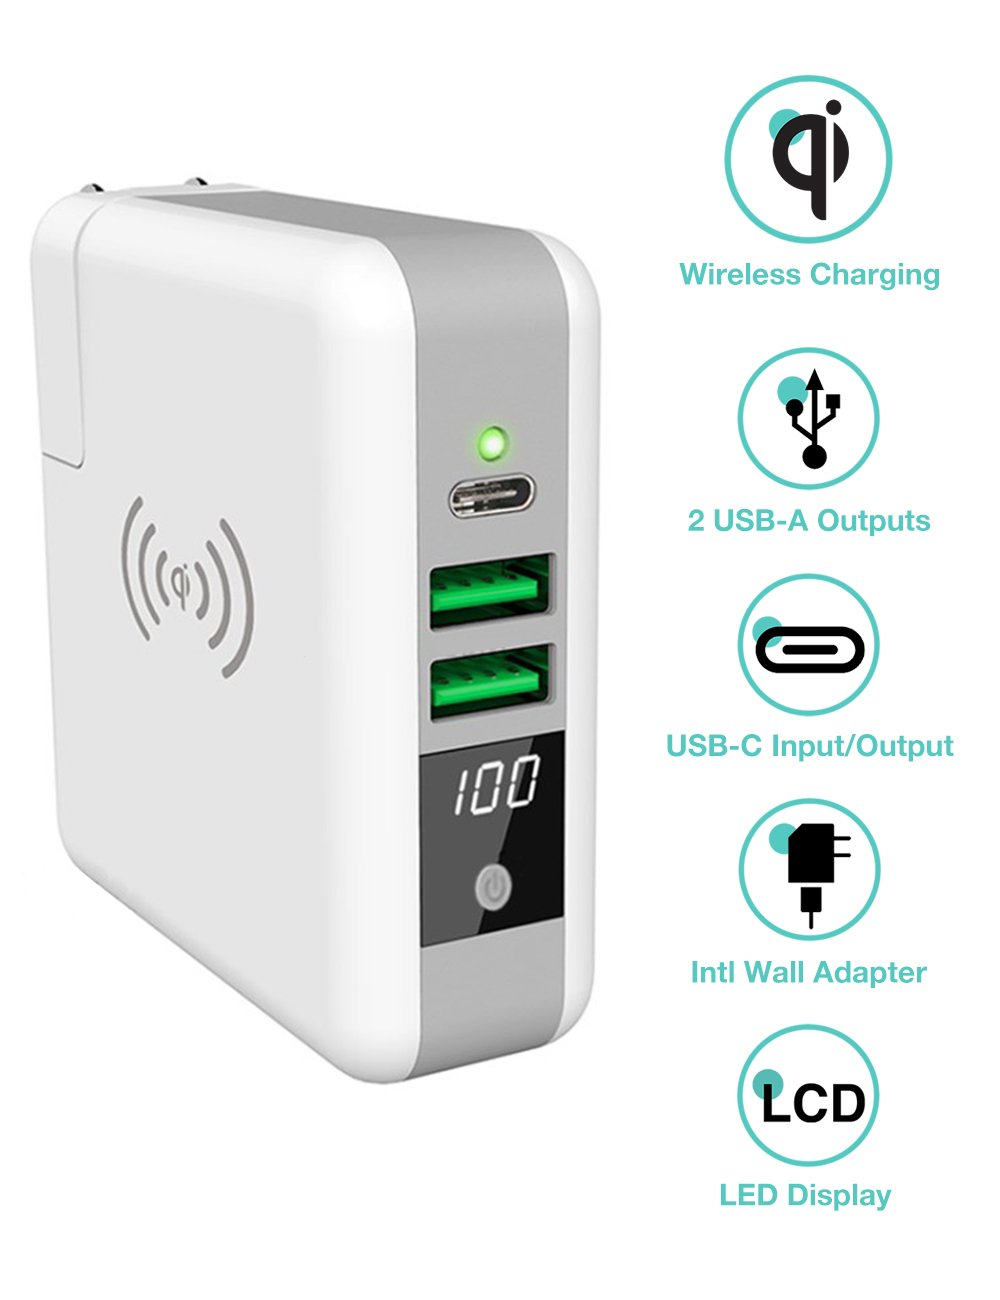 3-in-1 International Travel Adapter Wireless Charger Power Bank, QiPlus 6700mah External Battery Pack with Wall Charger and Qi Wireless Charging Pad for iPhone Samsung (LED screen,1xUSB-C+2xUSB-A port by Simpiz